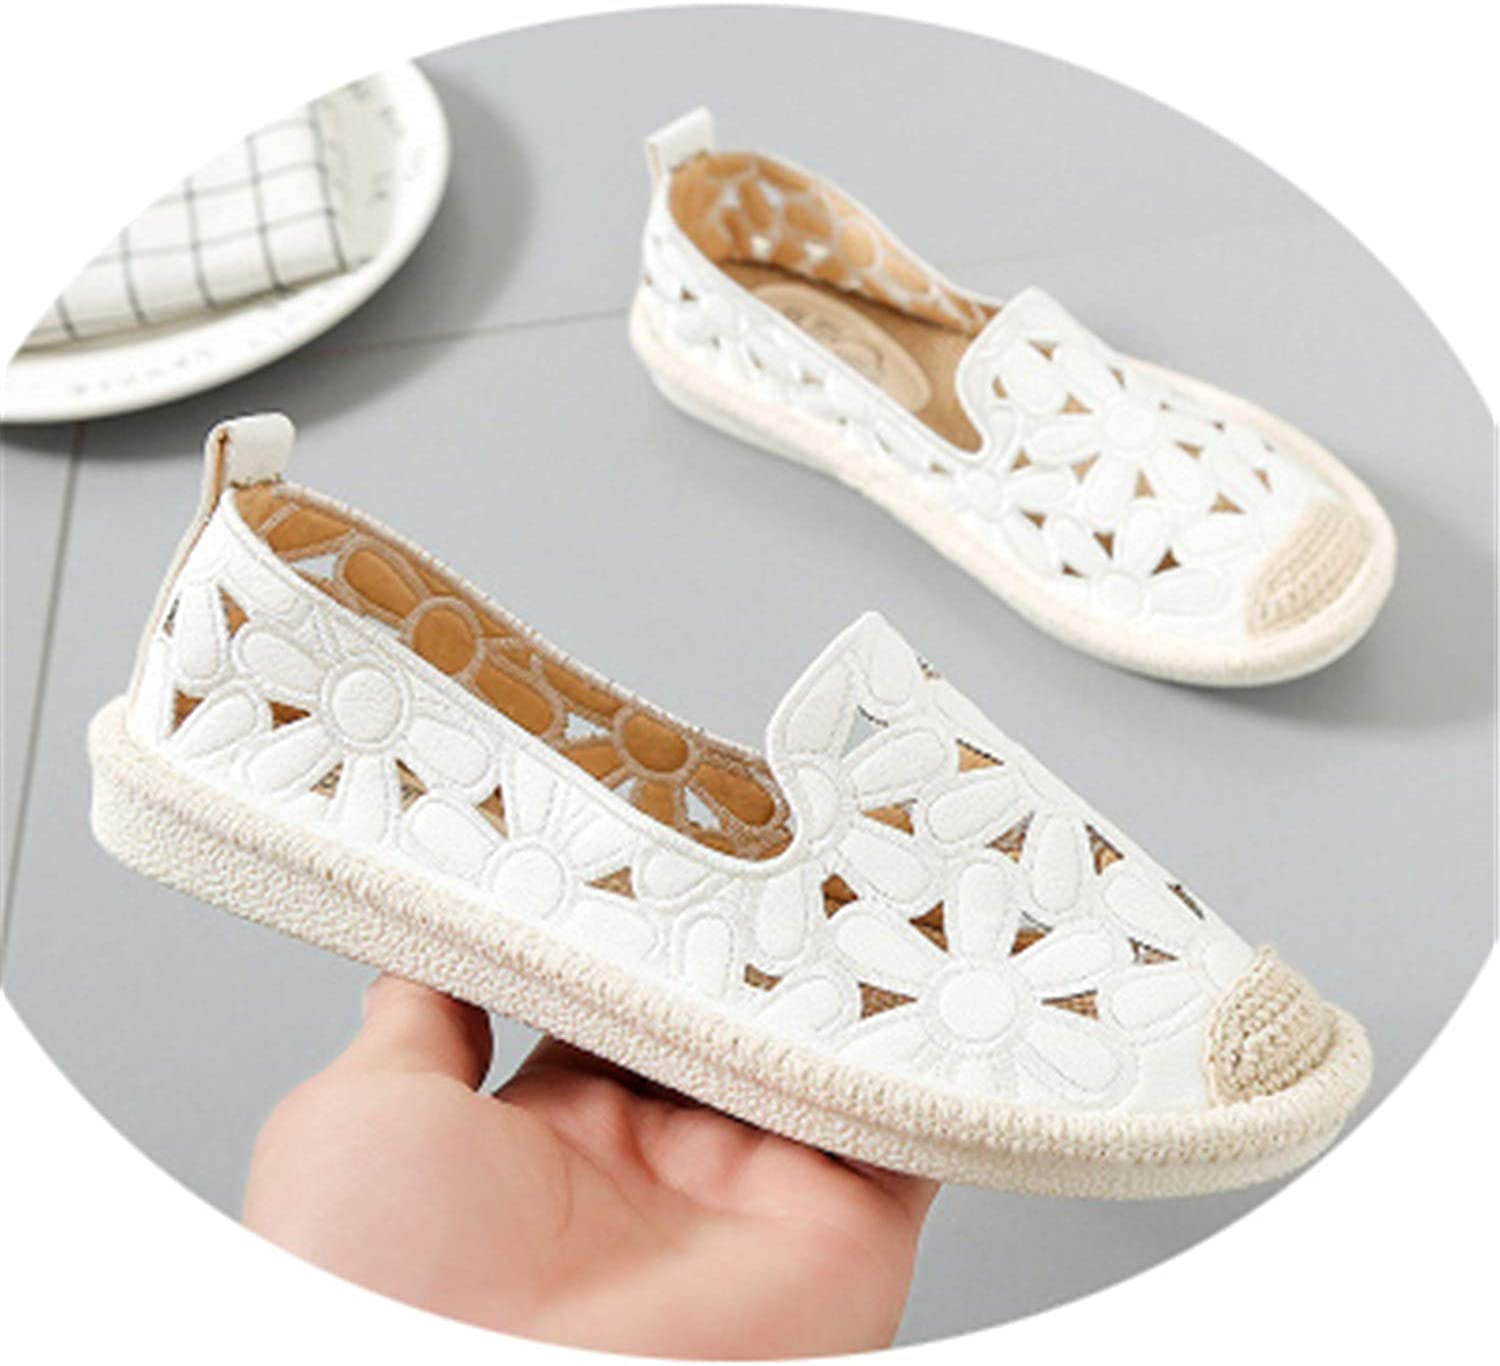 Reputation1 Flat New Women Flats Embroidery Straw Fisherman shoes Cut Out Hollow Out Casual shoes Spring Summer Green Whit